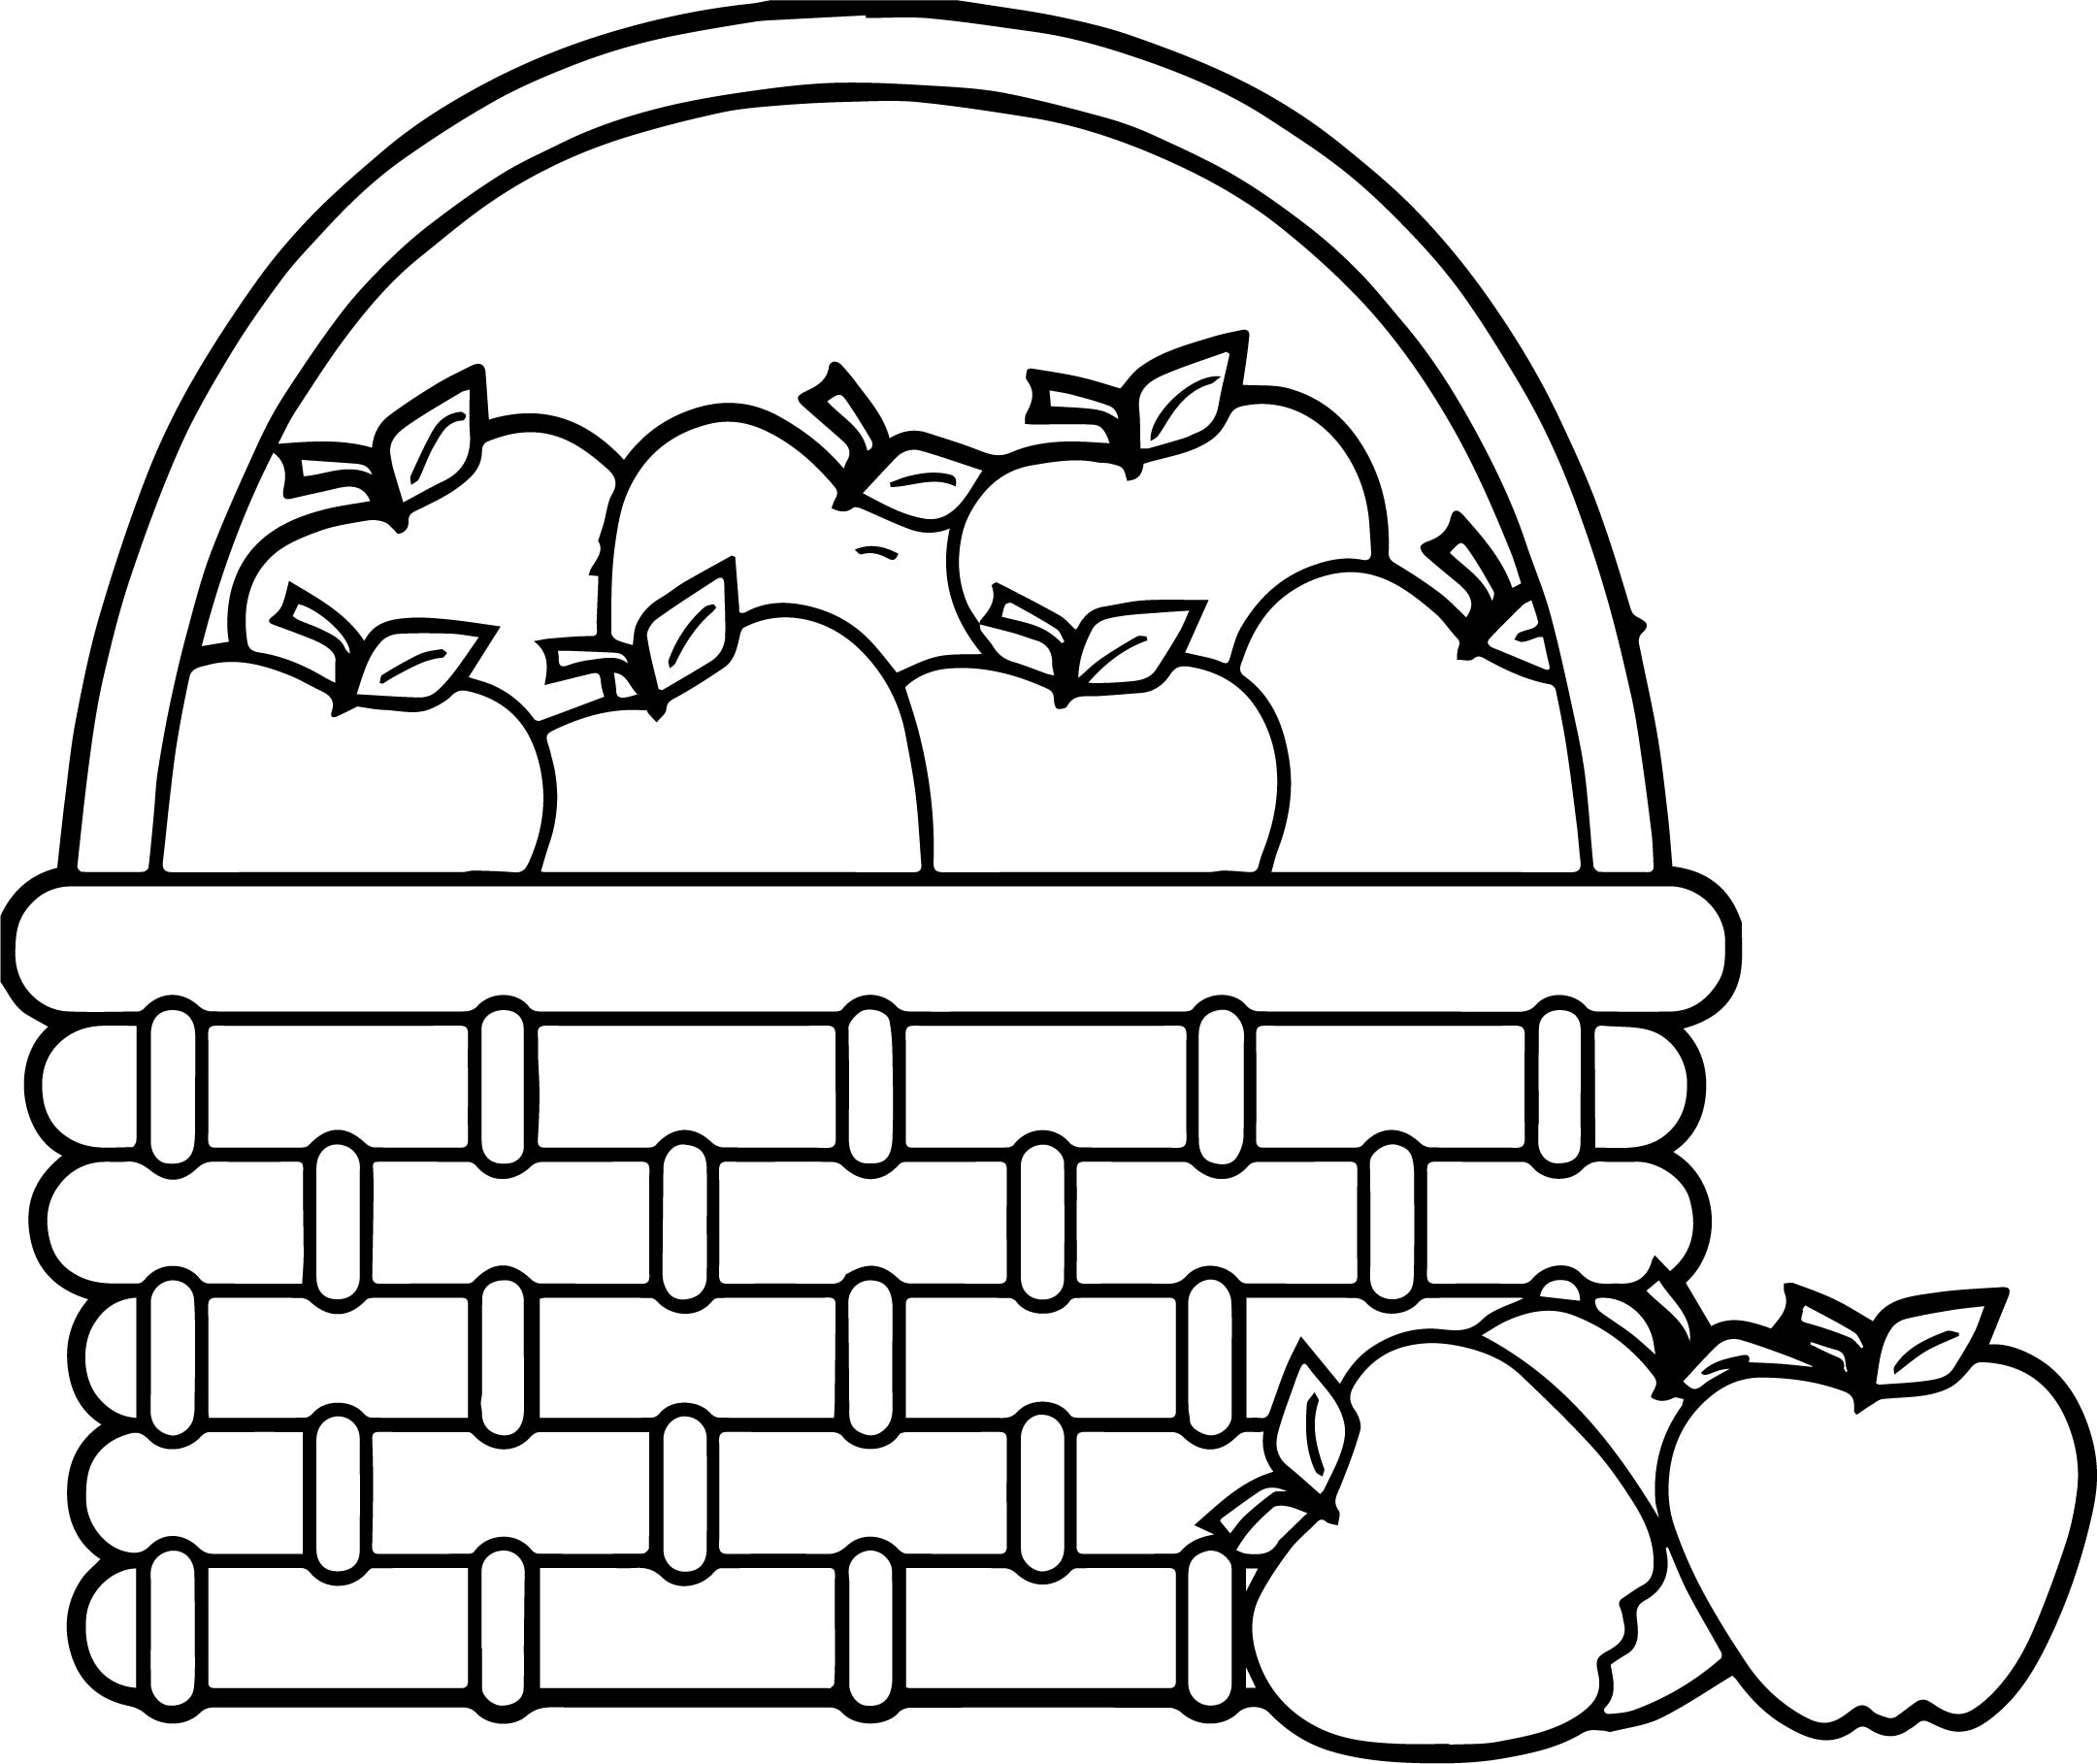 Picnic Basket Apple Basket Basket Apples Coloring Page | Wecoloringpage